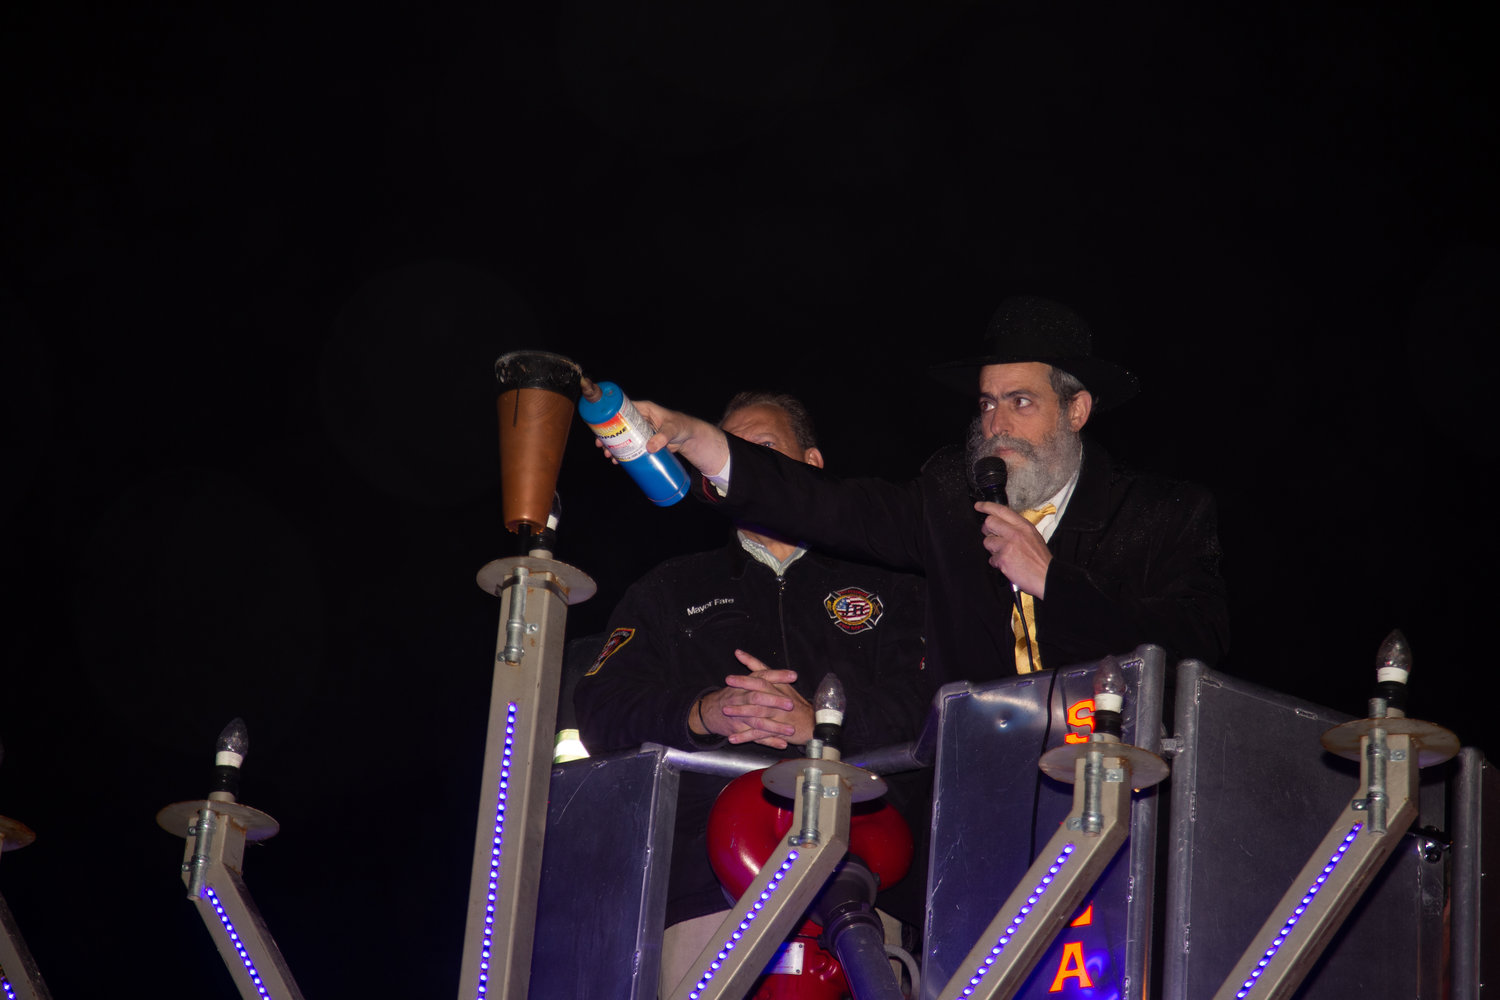 Rabbi Yitzchak Goldshmid put propane in the shamash candle, the candle that lights the others.